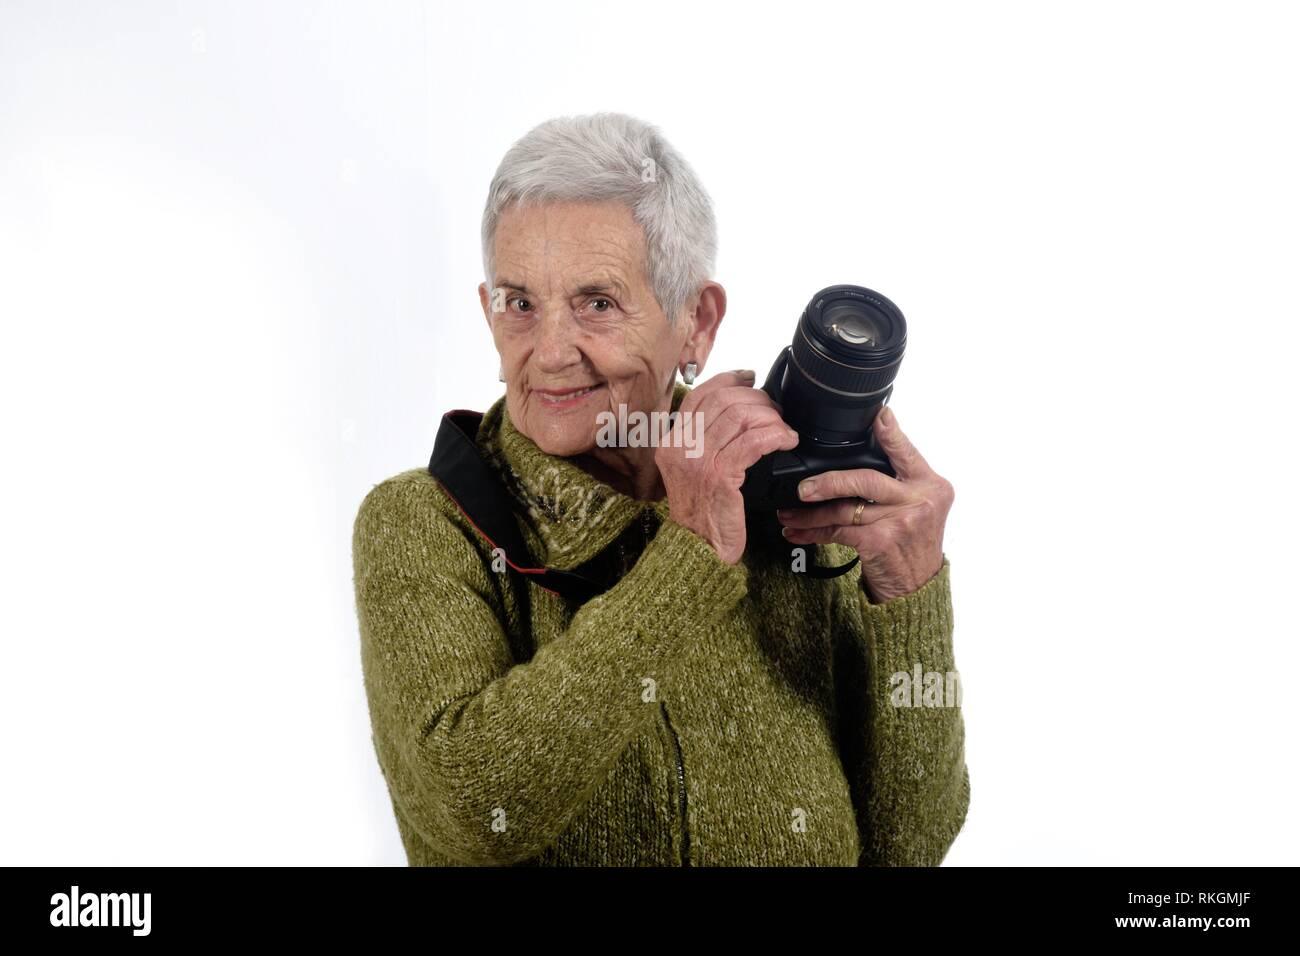 Portrait of a senior woman with SLR camera. - Stock Image